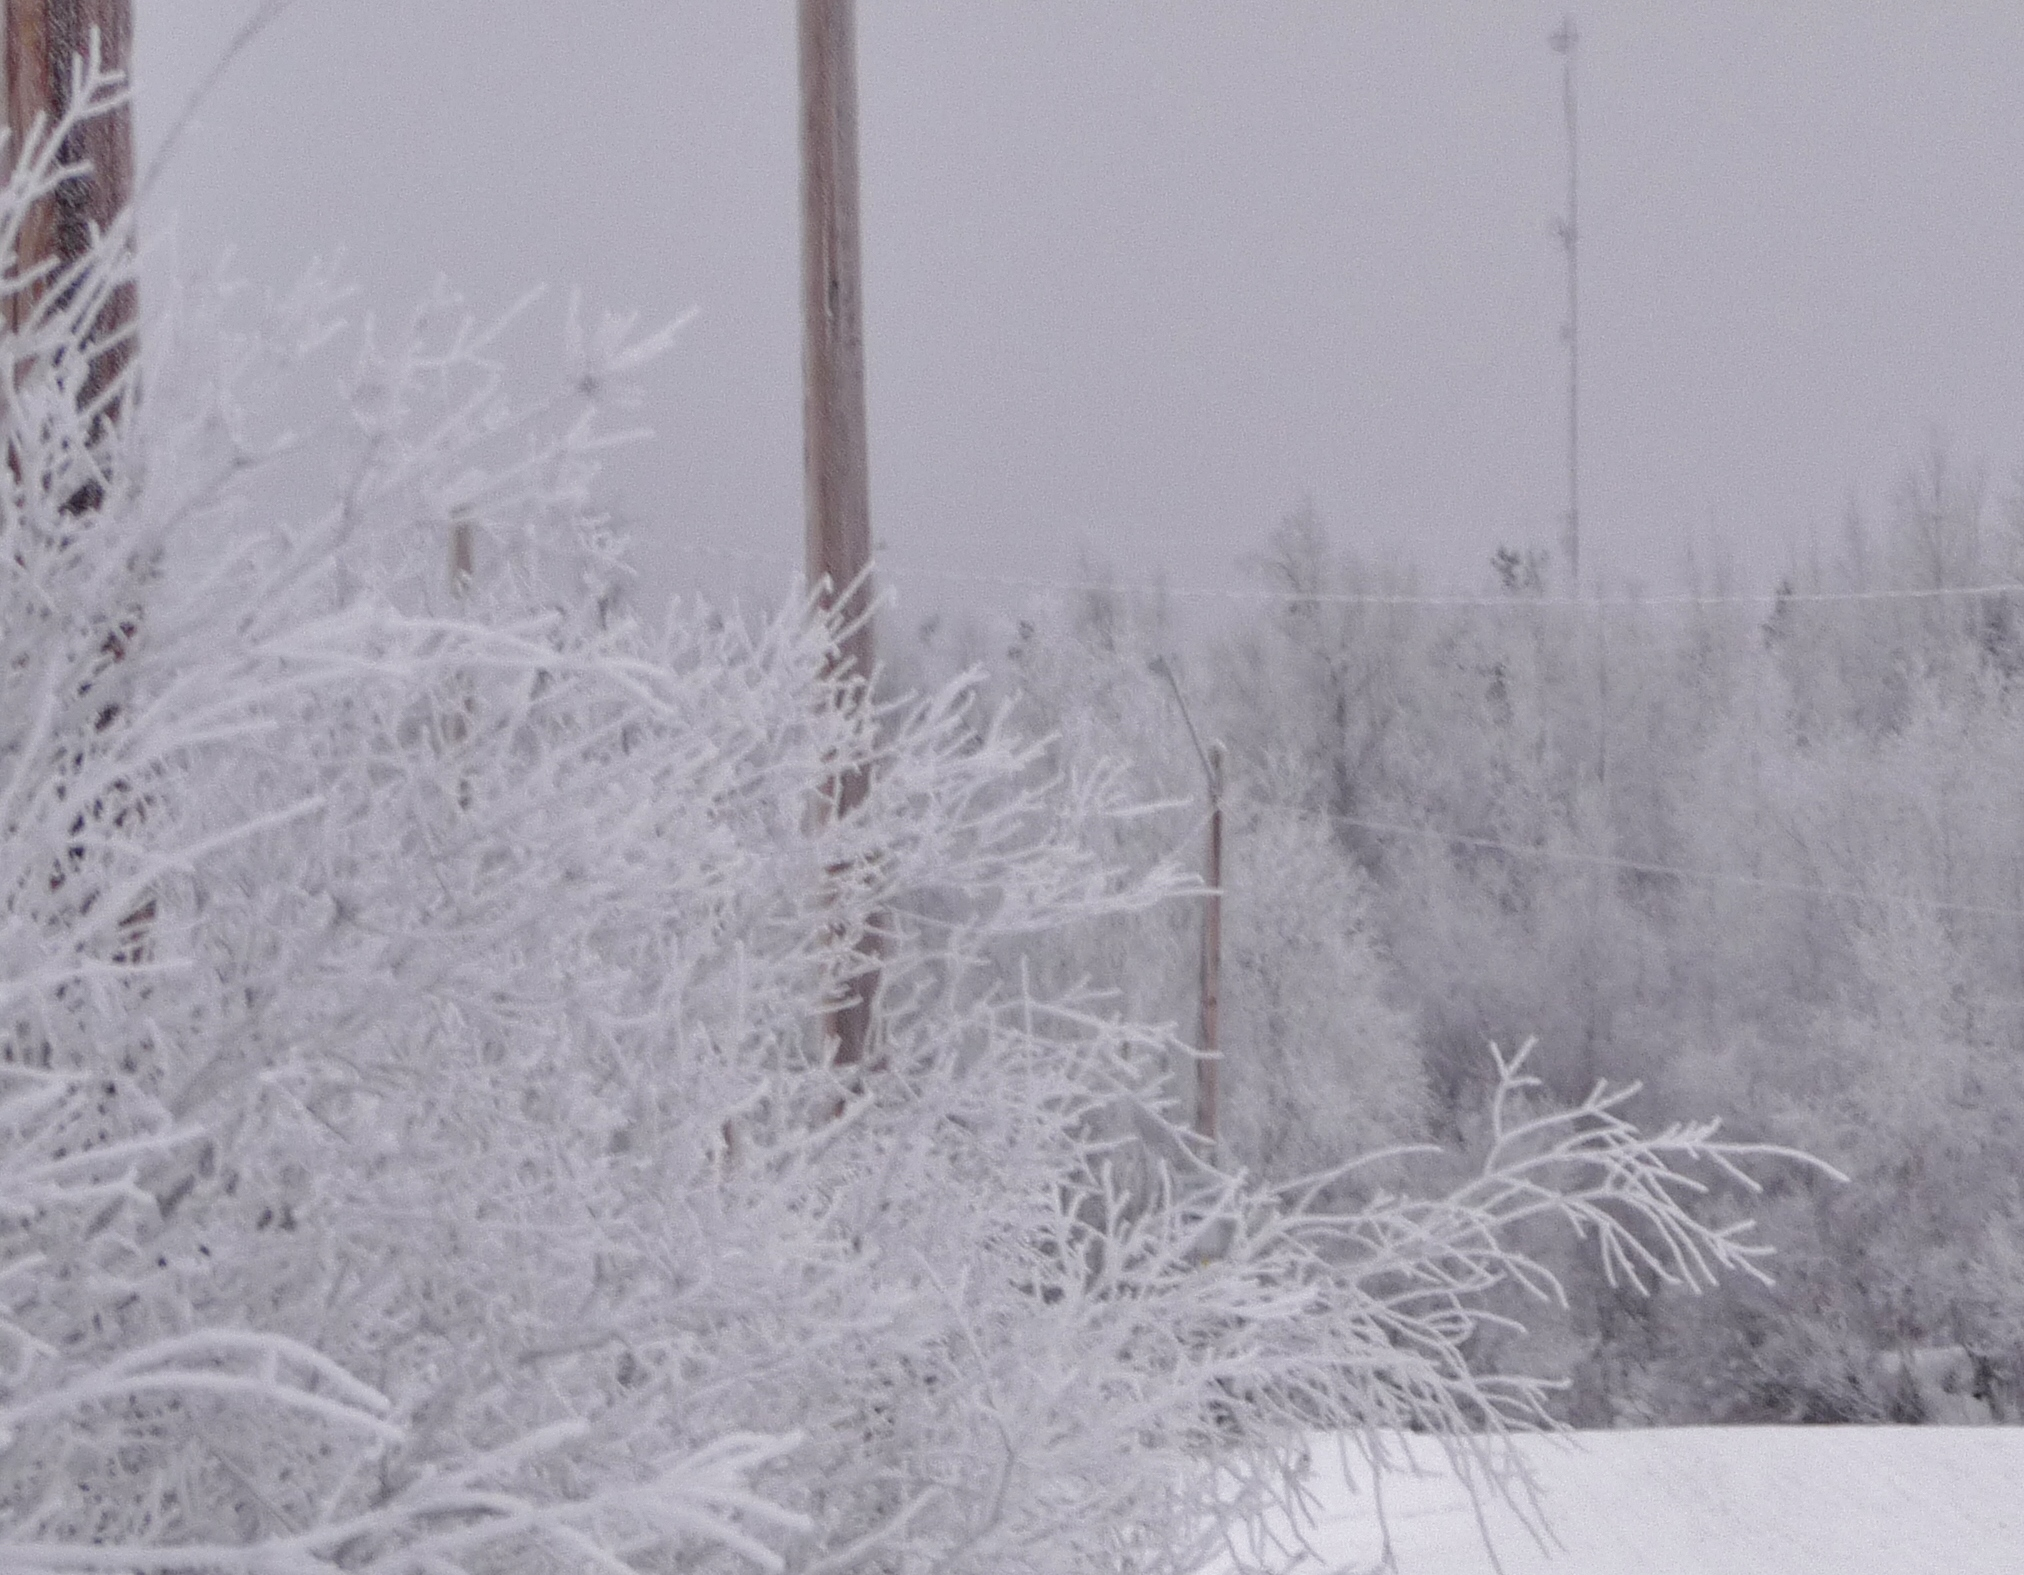 Download the full-sized image of Hoarfrost (Patuk) on Willows near Inuvik, NWT